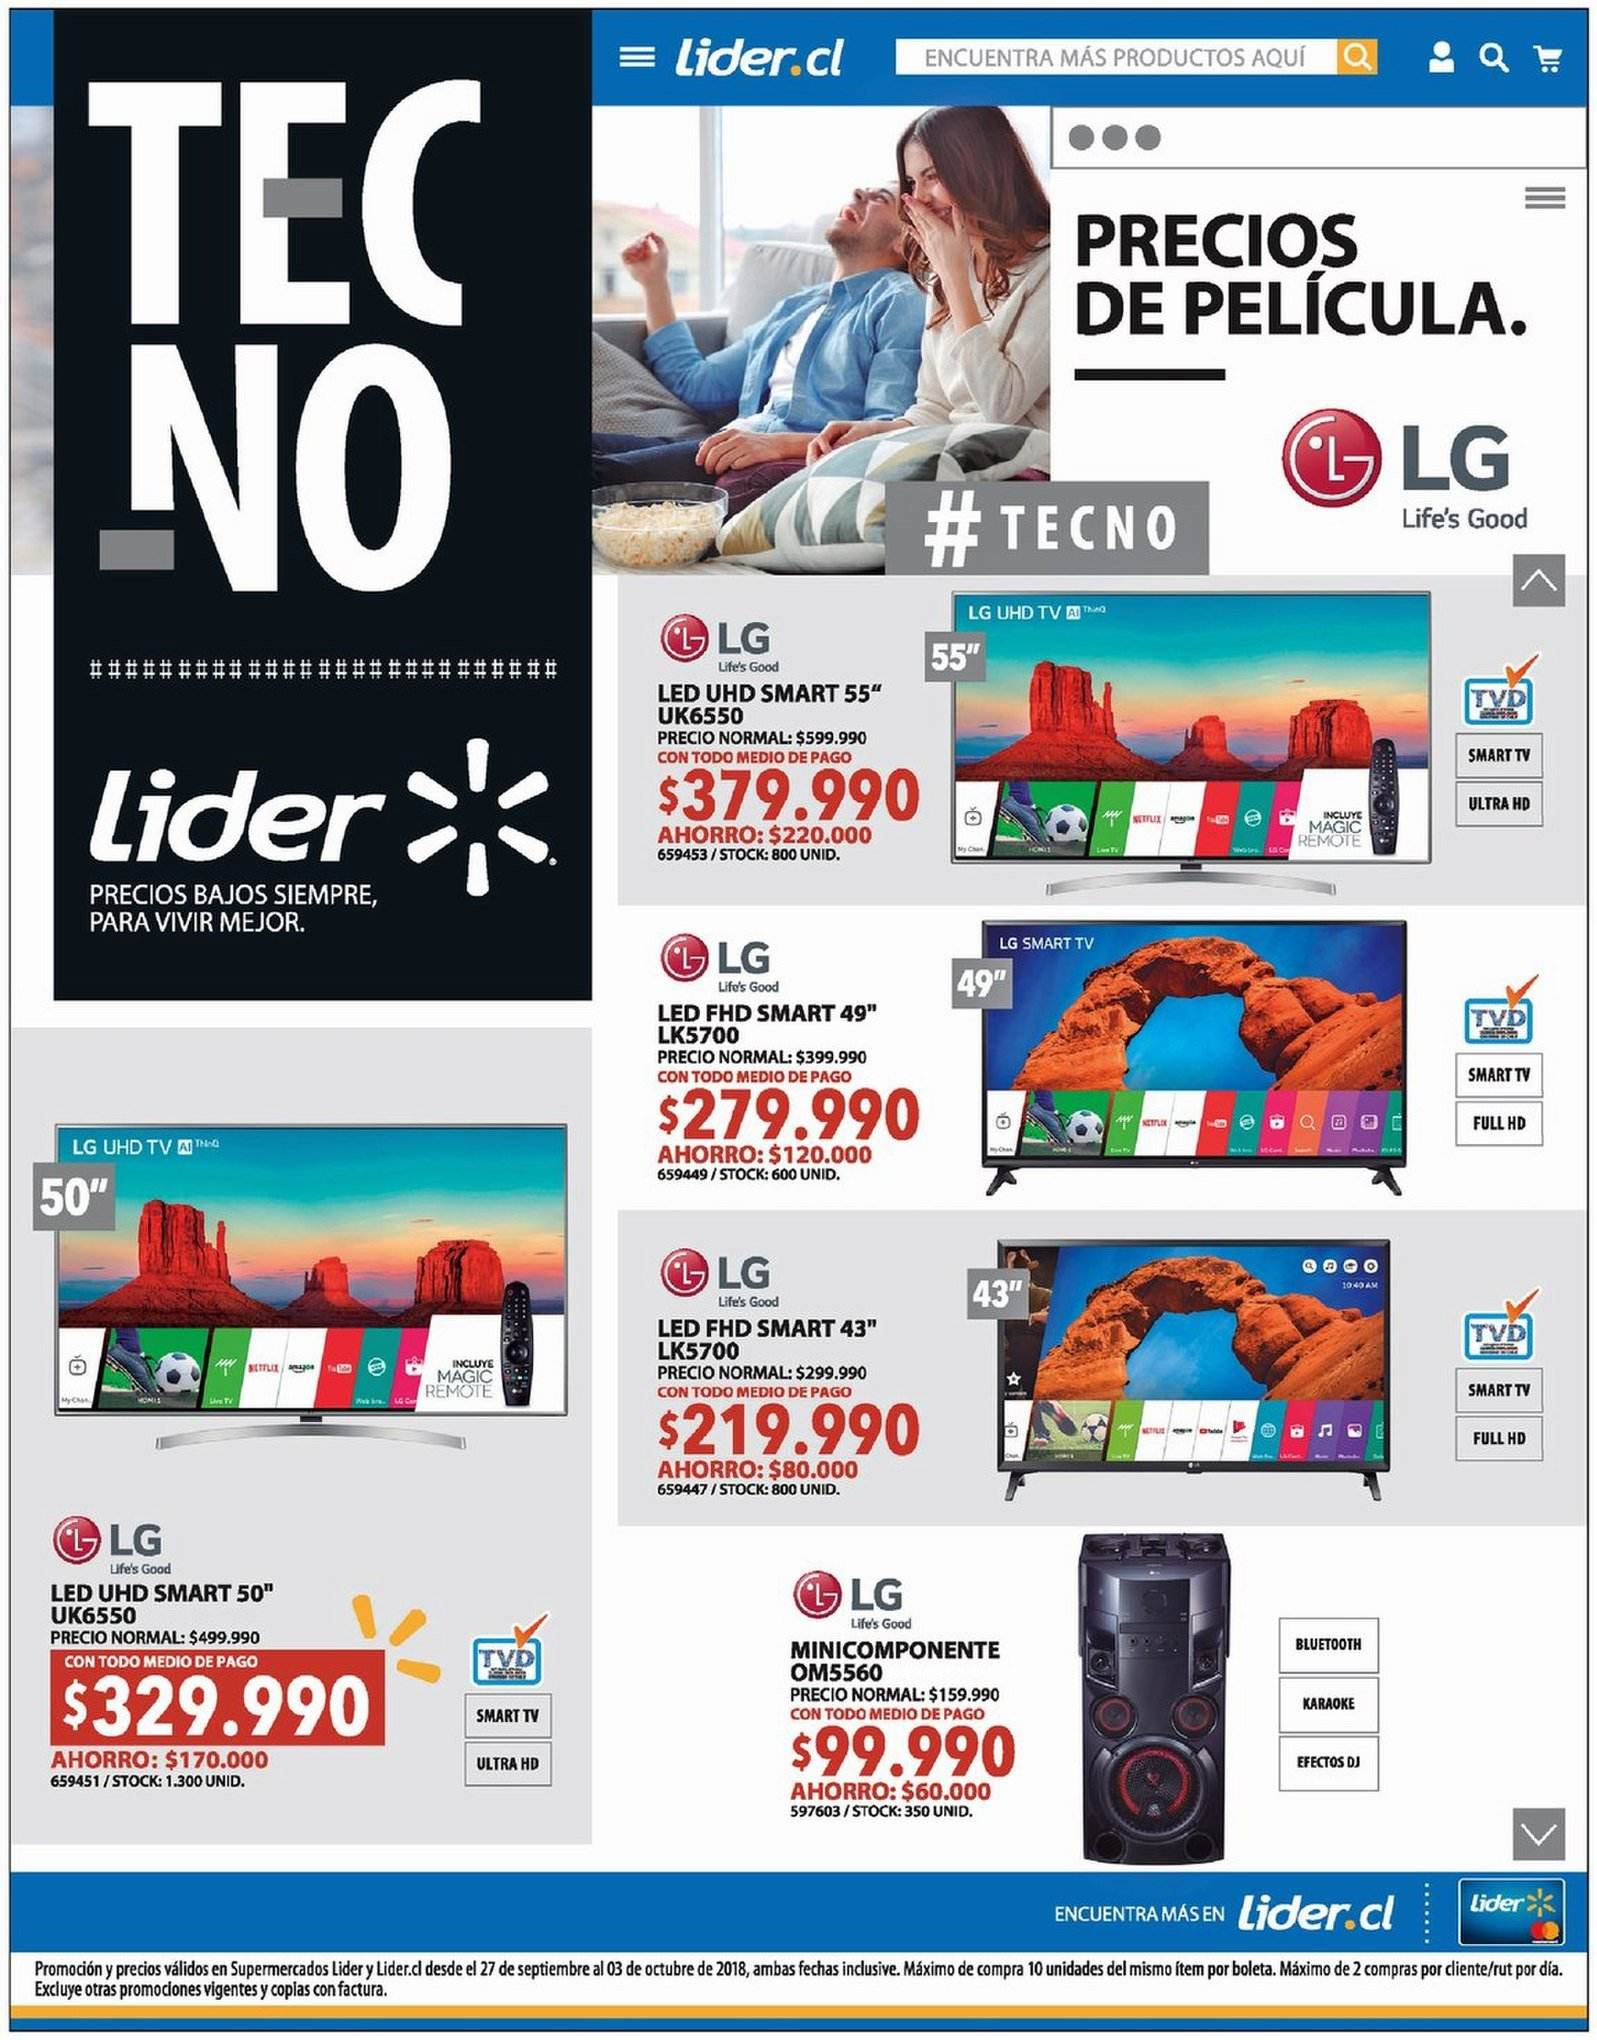 Folleto actual Lider - 27.9.2018 - 3.10.2018 - Ventas - led, bluetooth, full hd, karaoke, lg, smart tv, tv, ultra hd. Página 1.